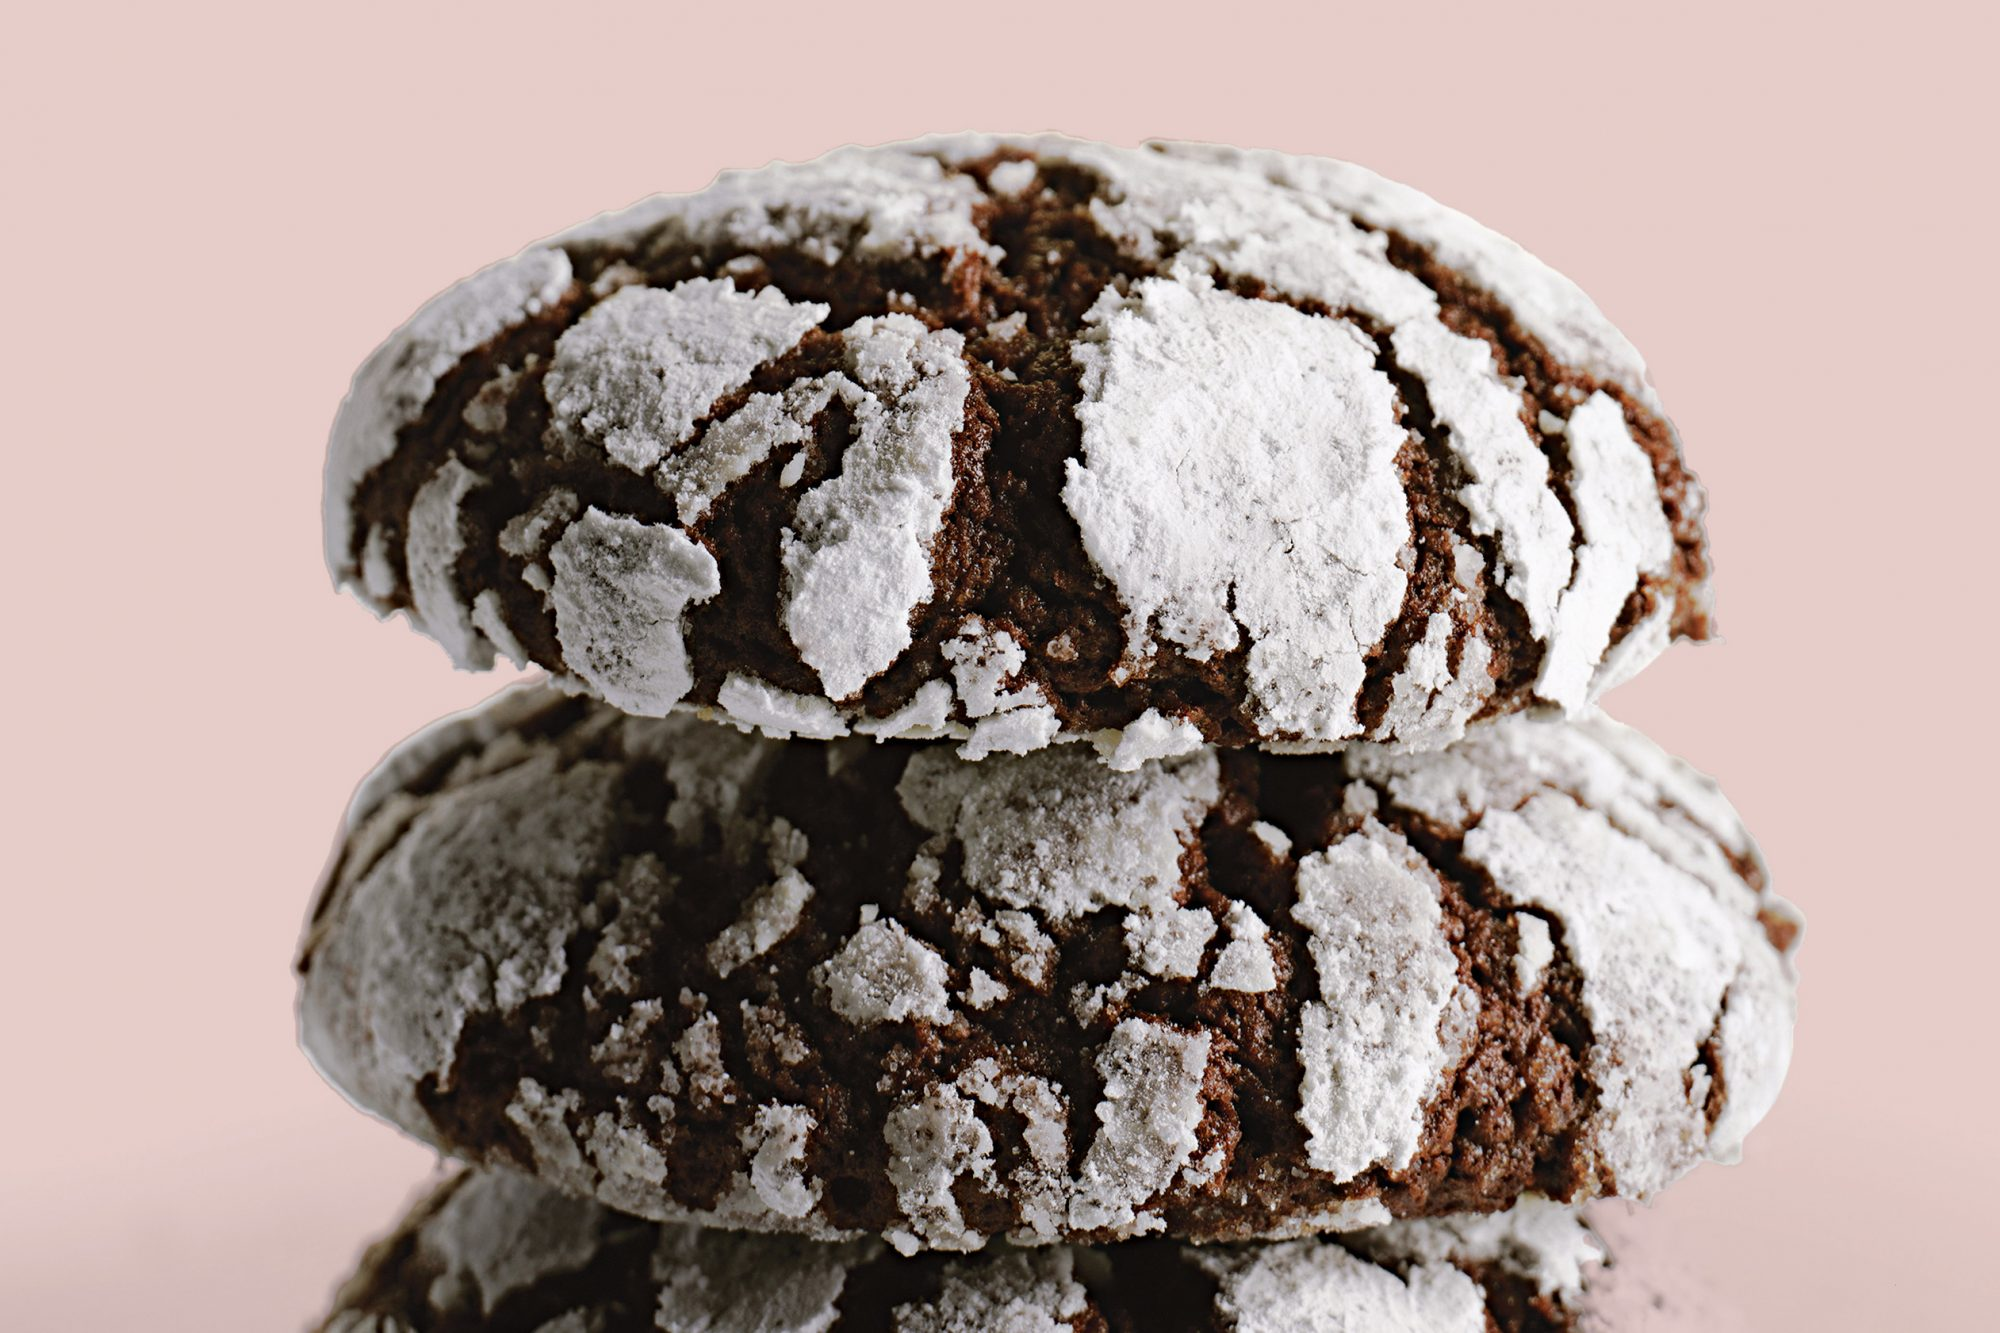 To create the appearance of a snow-kissed fudgy cookie, this chocolate cookie dough is rolled in confectioners' sugar just before baking.